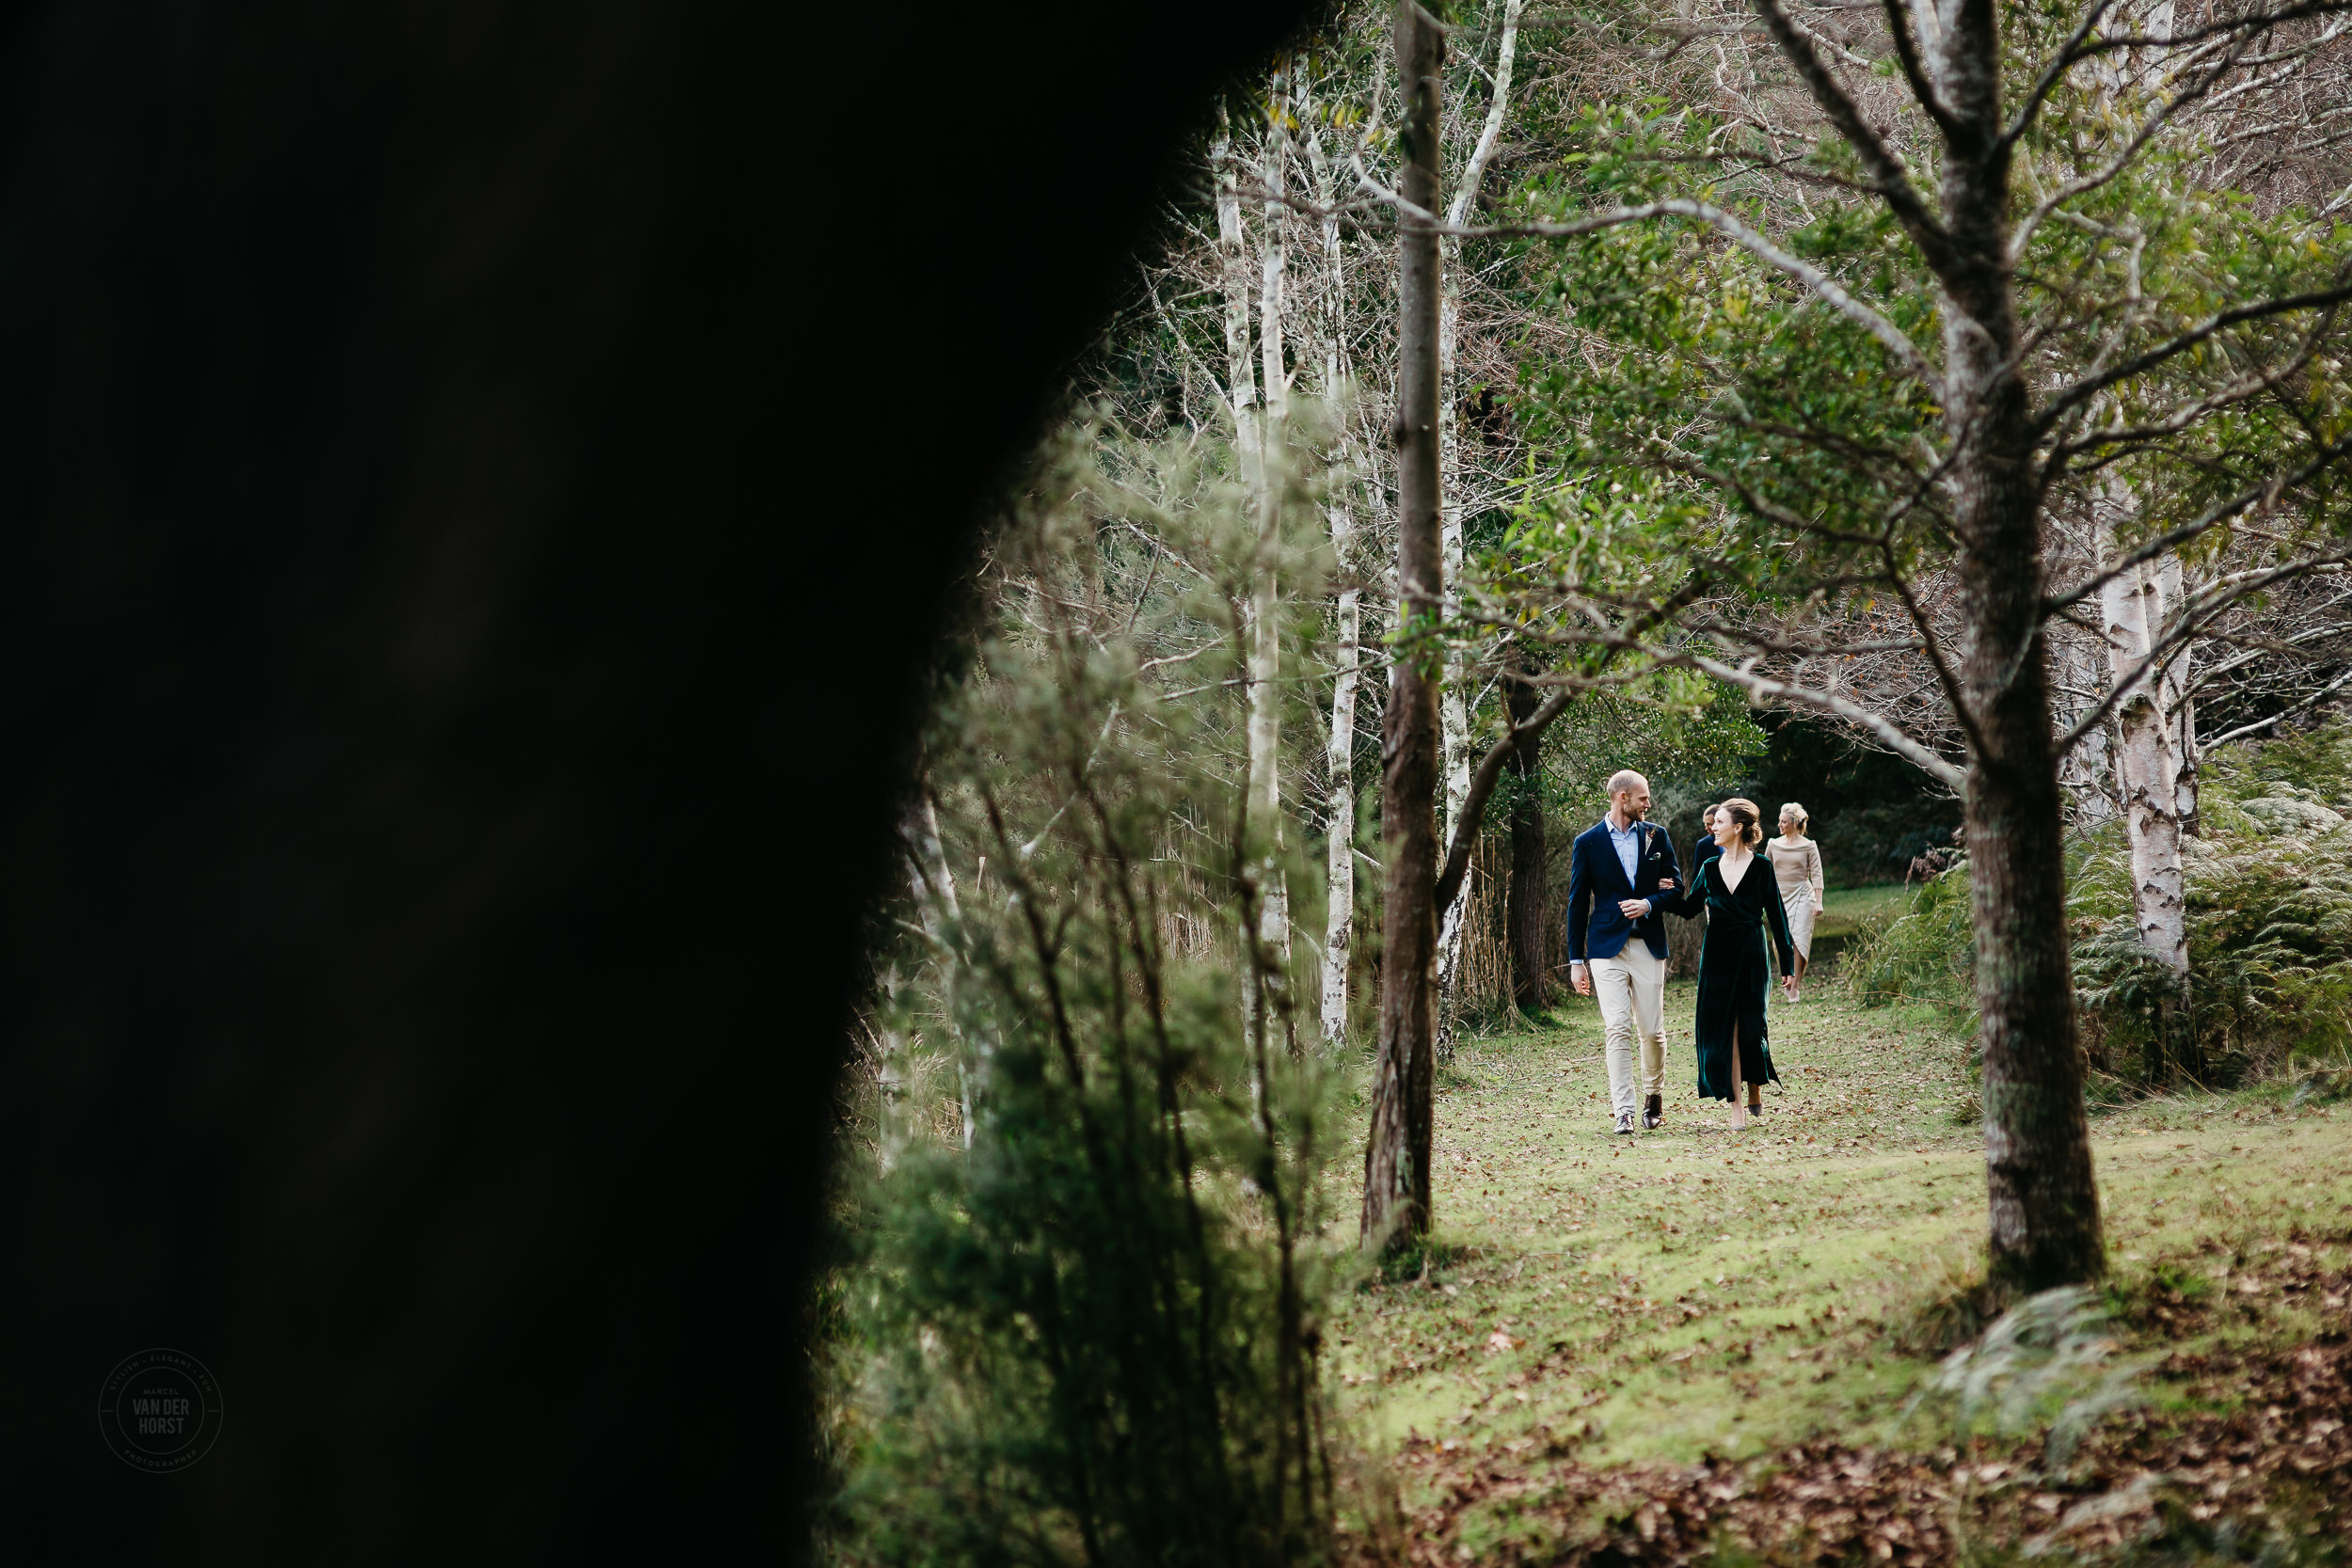 Melbourne-Wedding-Photographer-1051.jpg